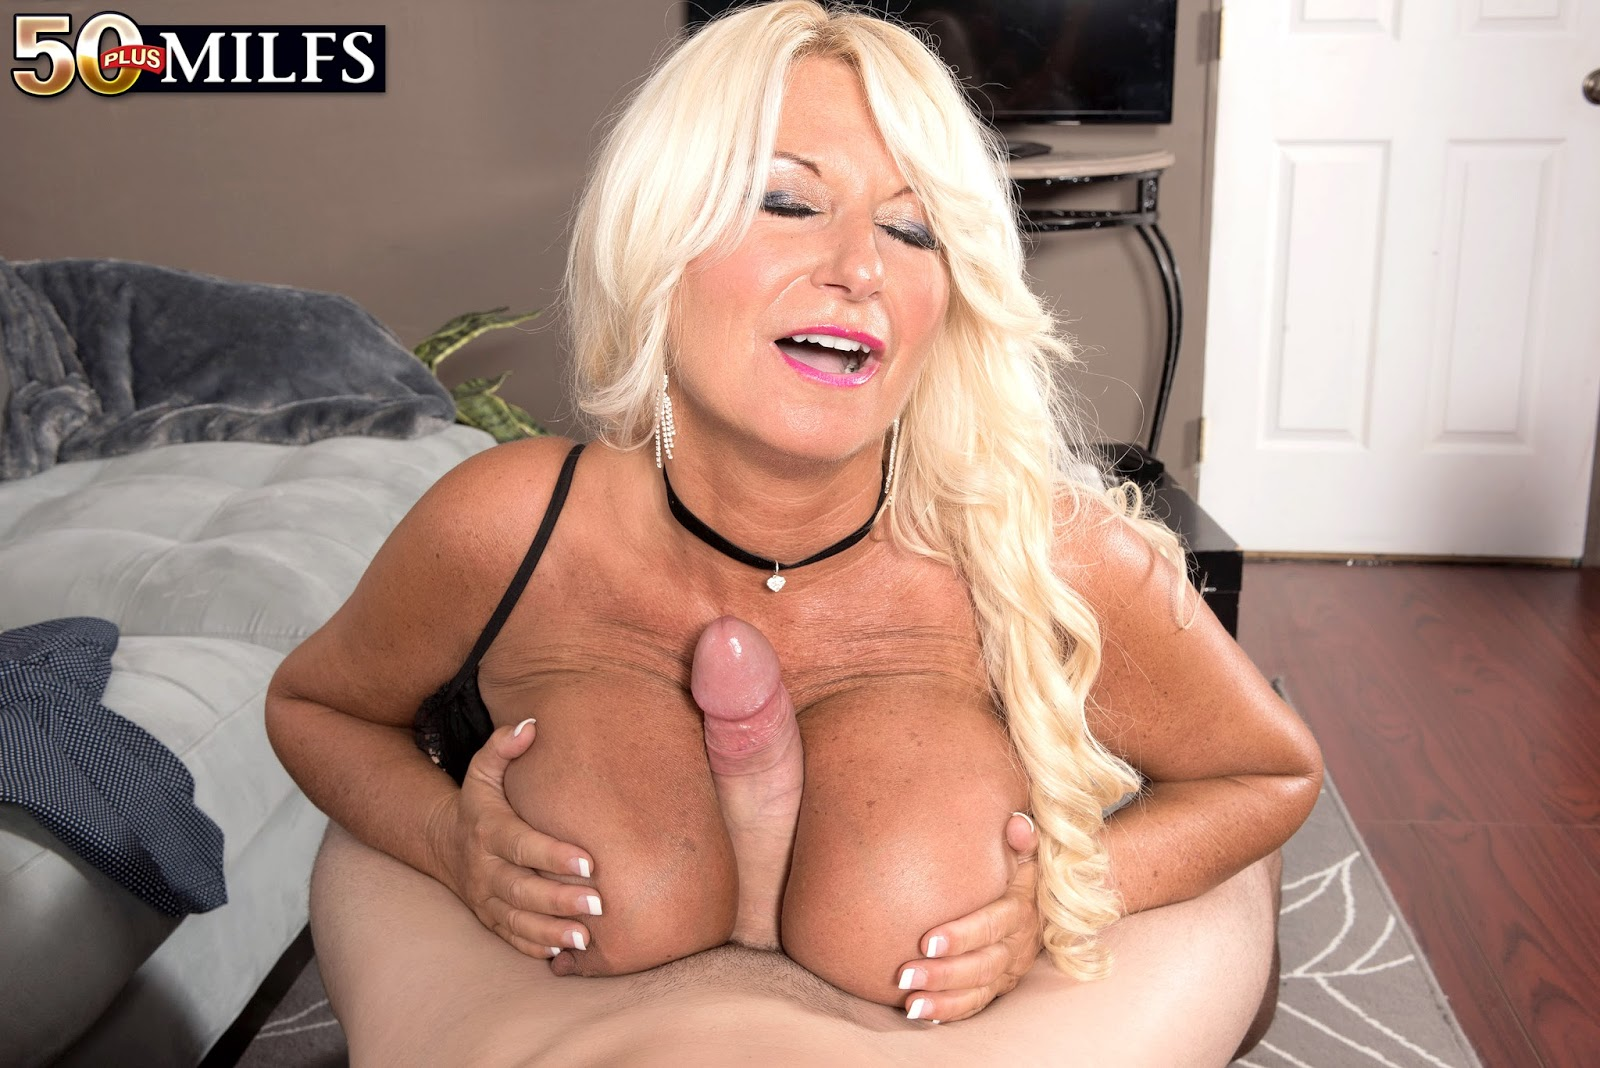 Briana banks blowjob and facial